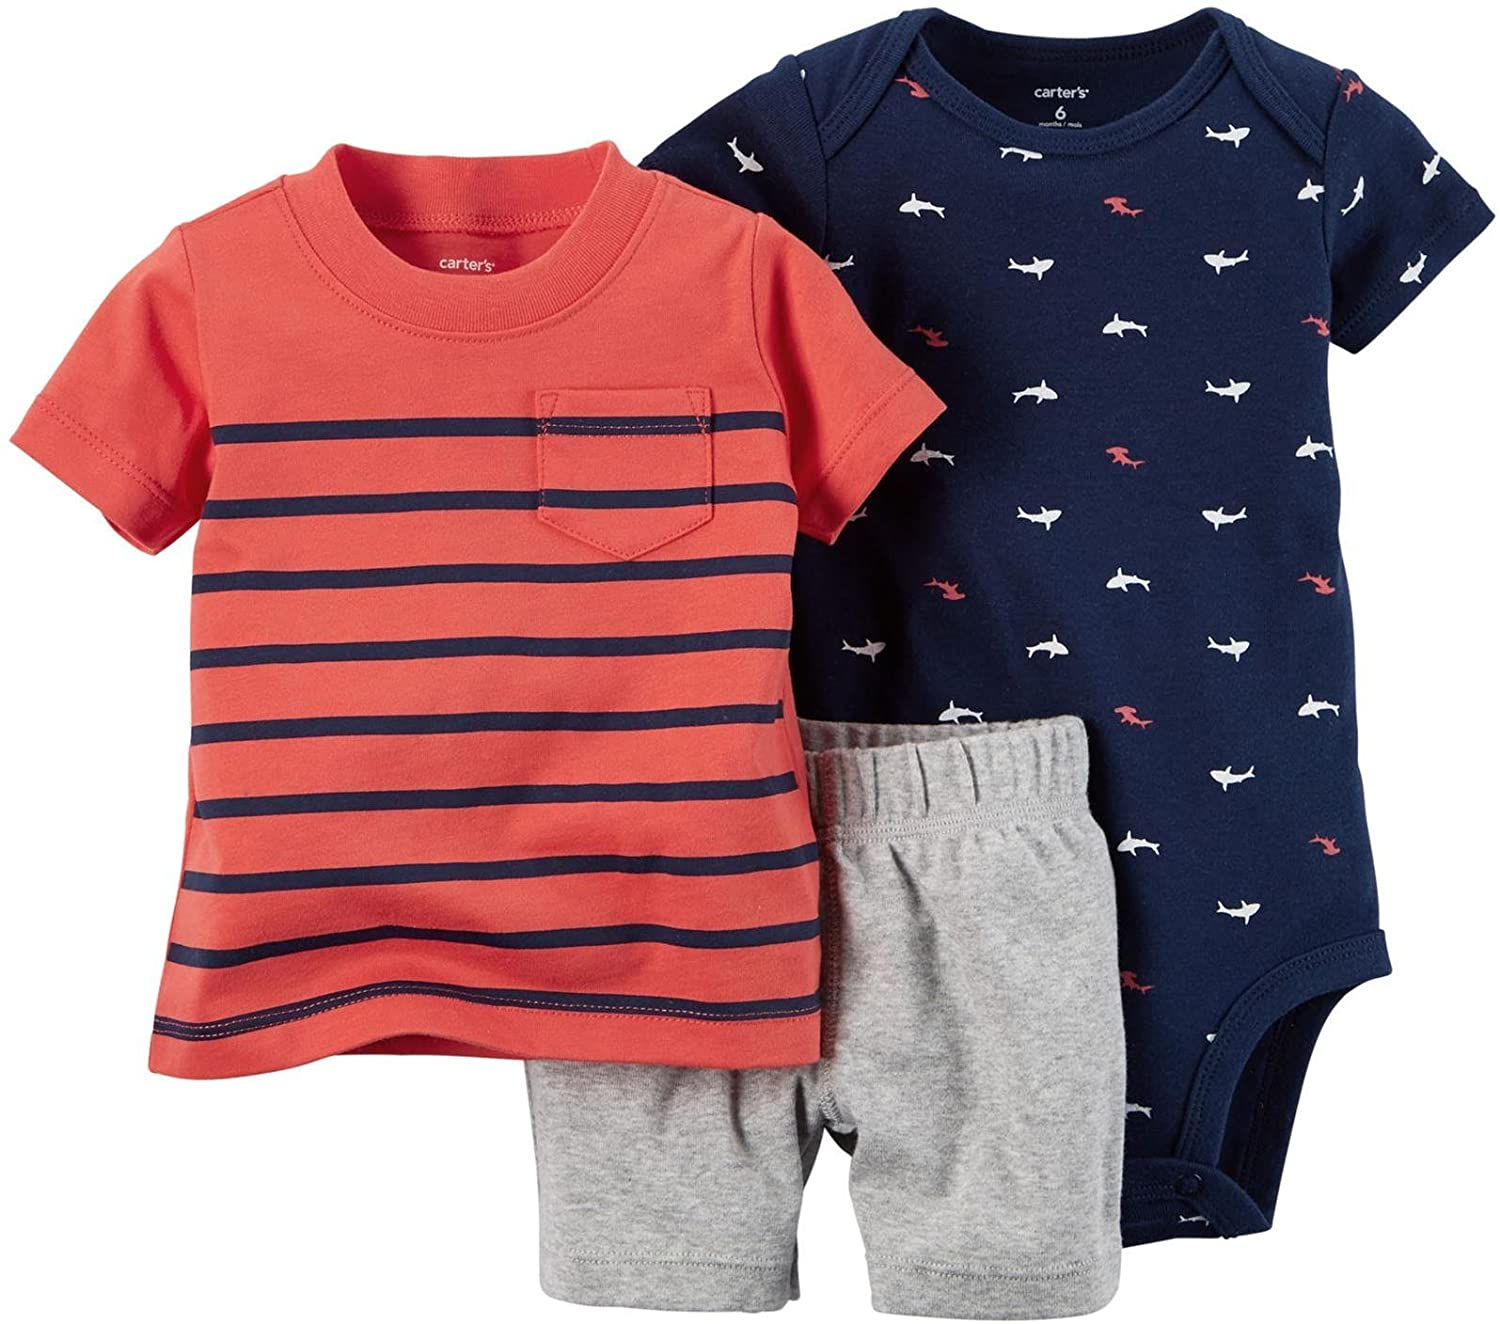 Carter's Baby Boy Diaper Cover Set Red Navy Stripe